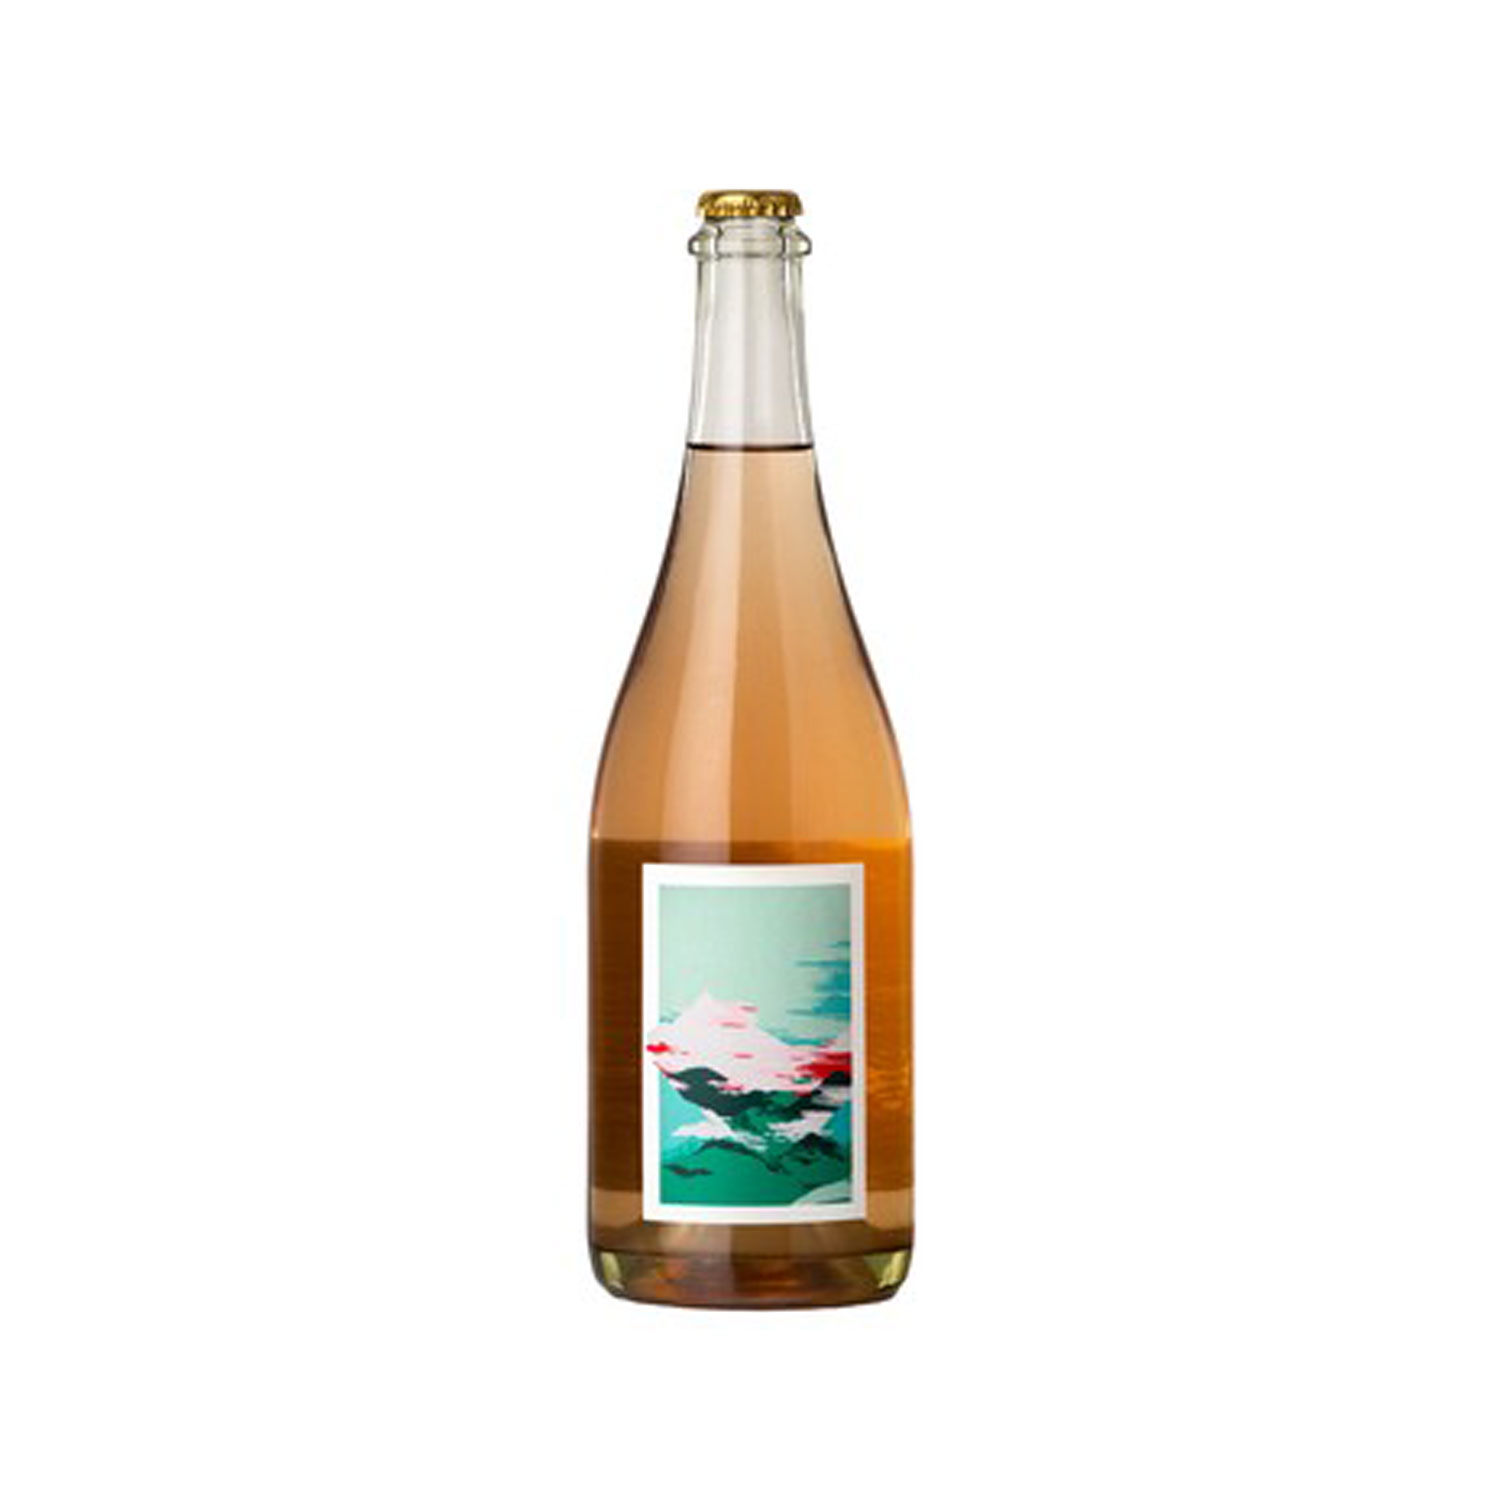 """YAMA"" SPARKLING WINE BY DIVISION WINEMAKING CO."